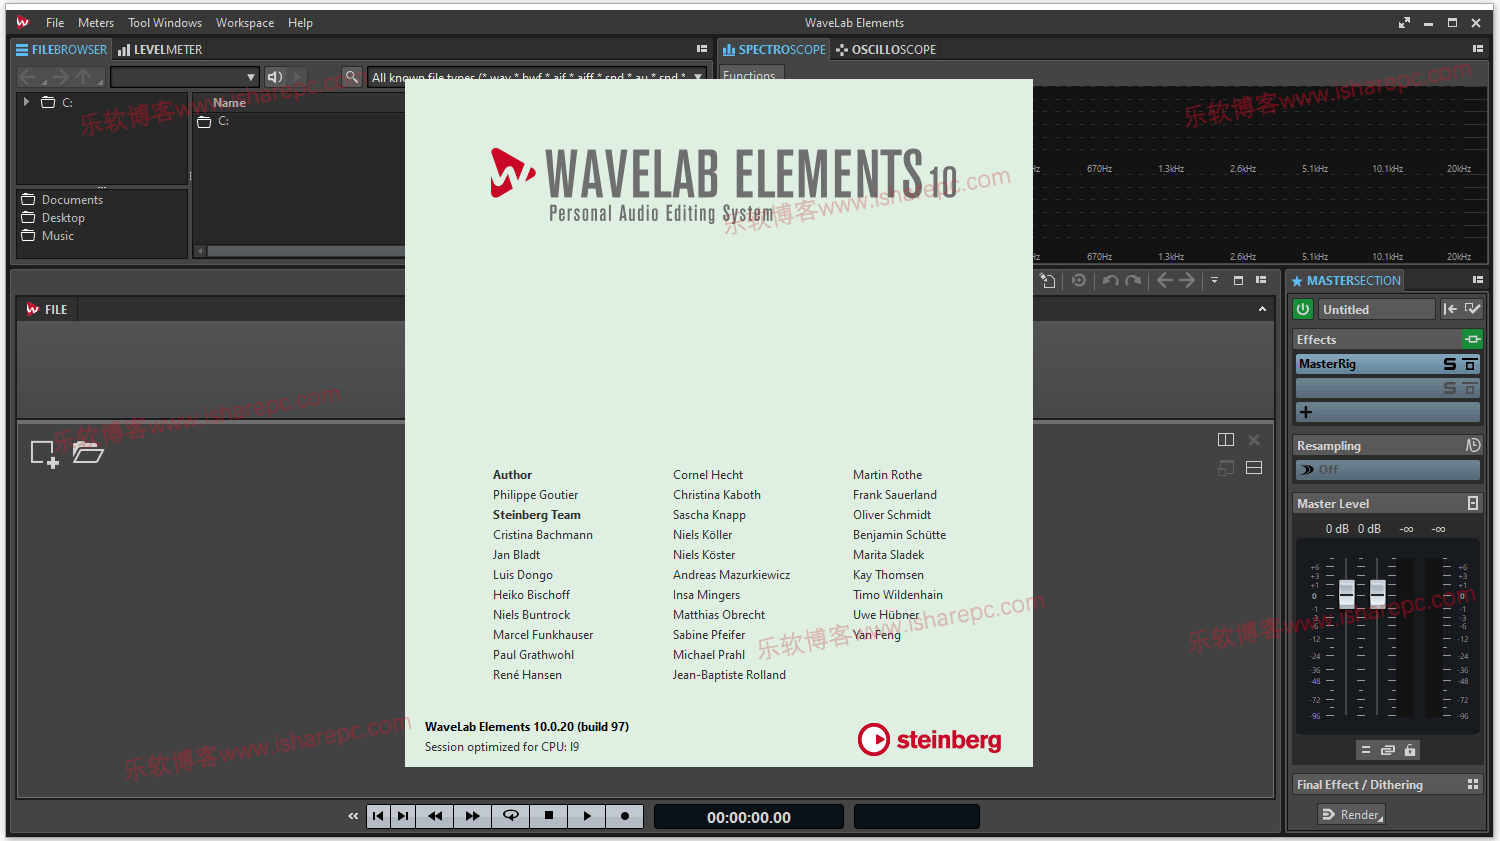 Steinberg WaveLab Elements 10.0.20破解版